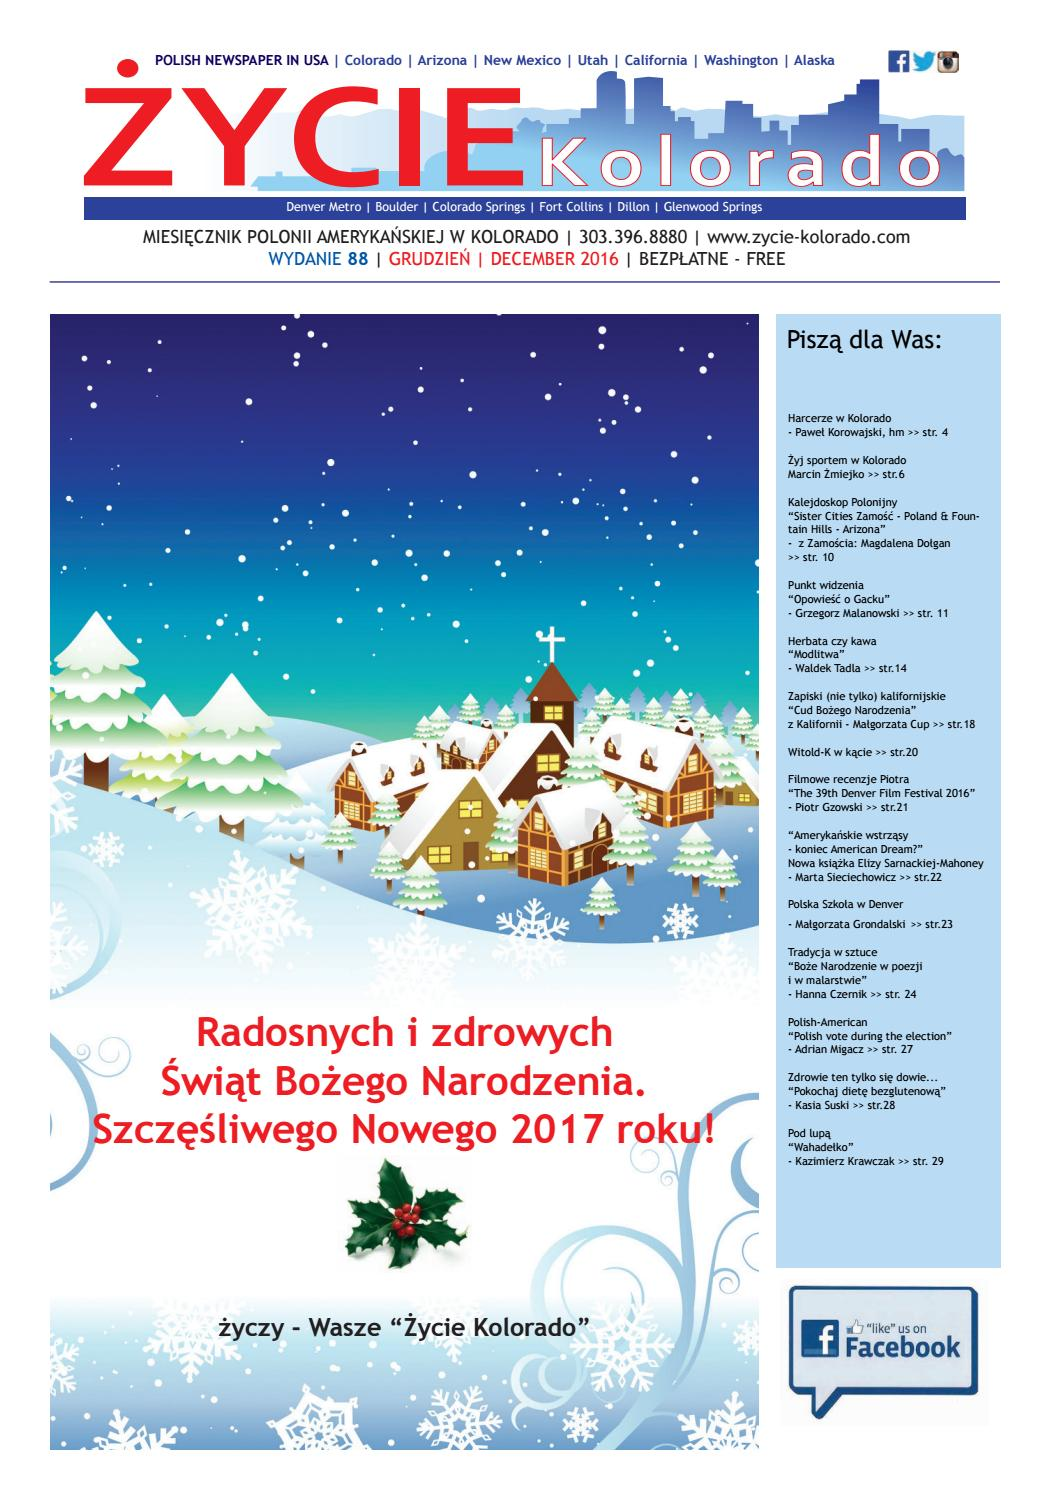 Zycie Kolorado December 2016 By Zycie Kolorado Issuu